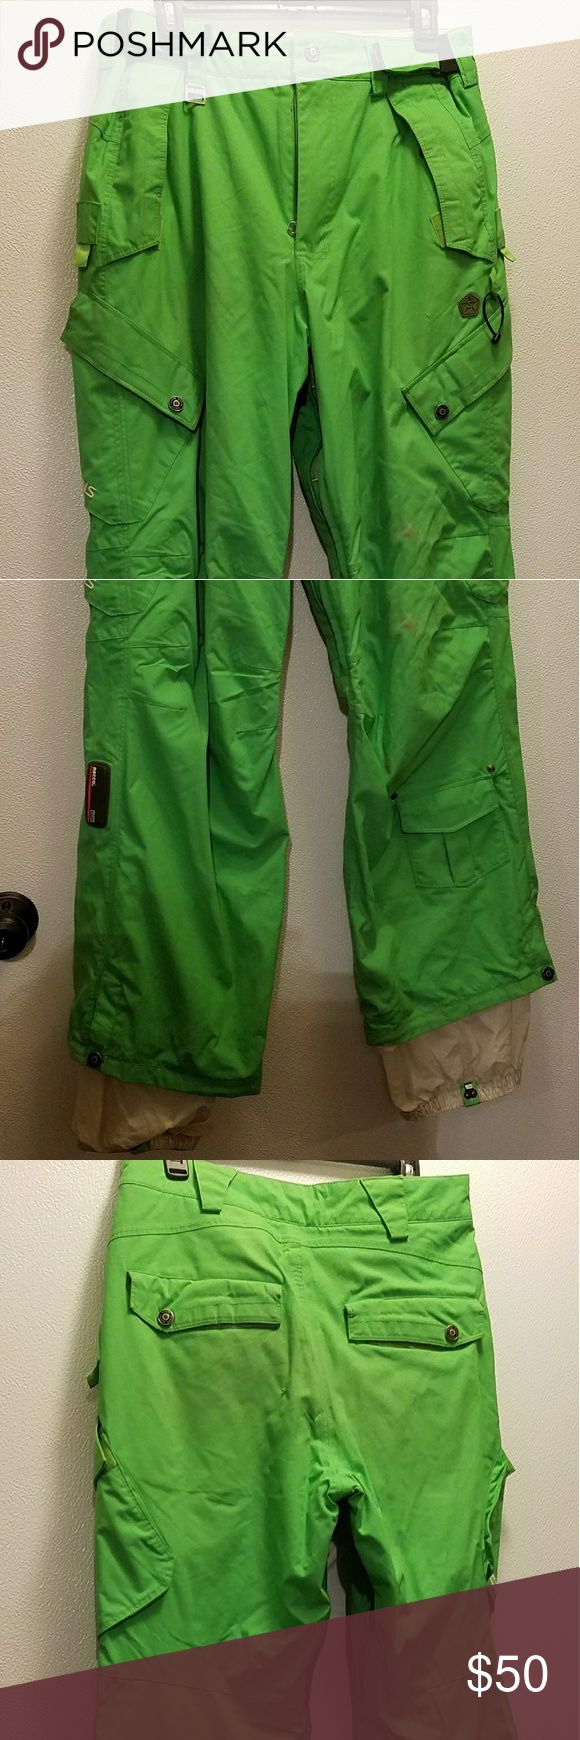 Sessions Snow Boarding Pants Lime green Sessions Snow Boarding Pants. Used. Light wear marks shown in picture, only cosmetic.  Good condition.  They are guys,  but I wore them. Size Mens Small. Fits like womans Large.  Adjustable sides, originally 300.00 Pants